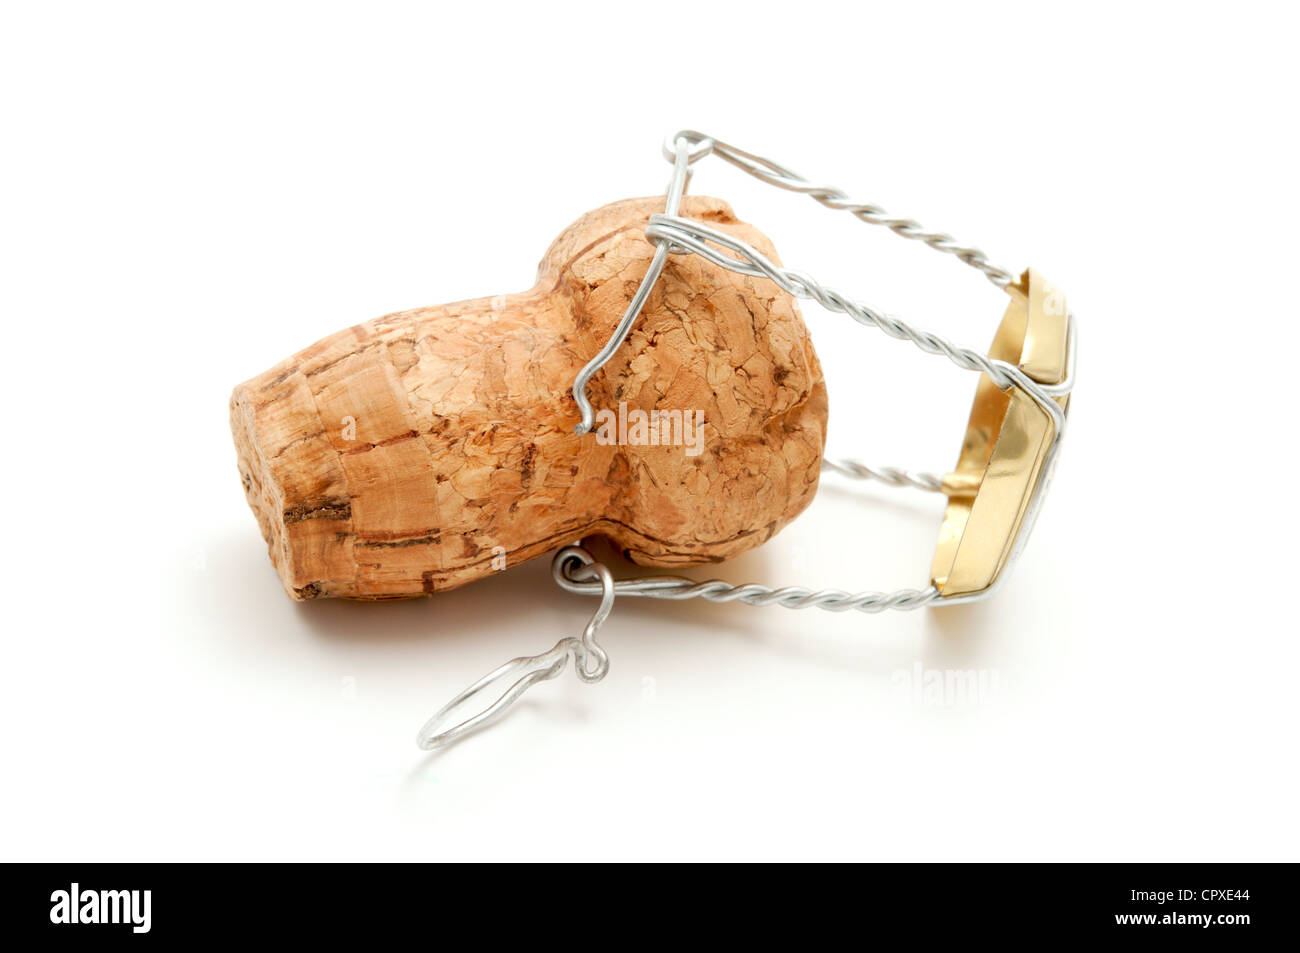 Champagne cork stopper with metal cage on a white background - Stock Image